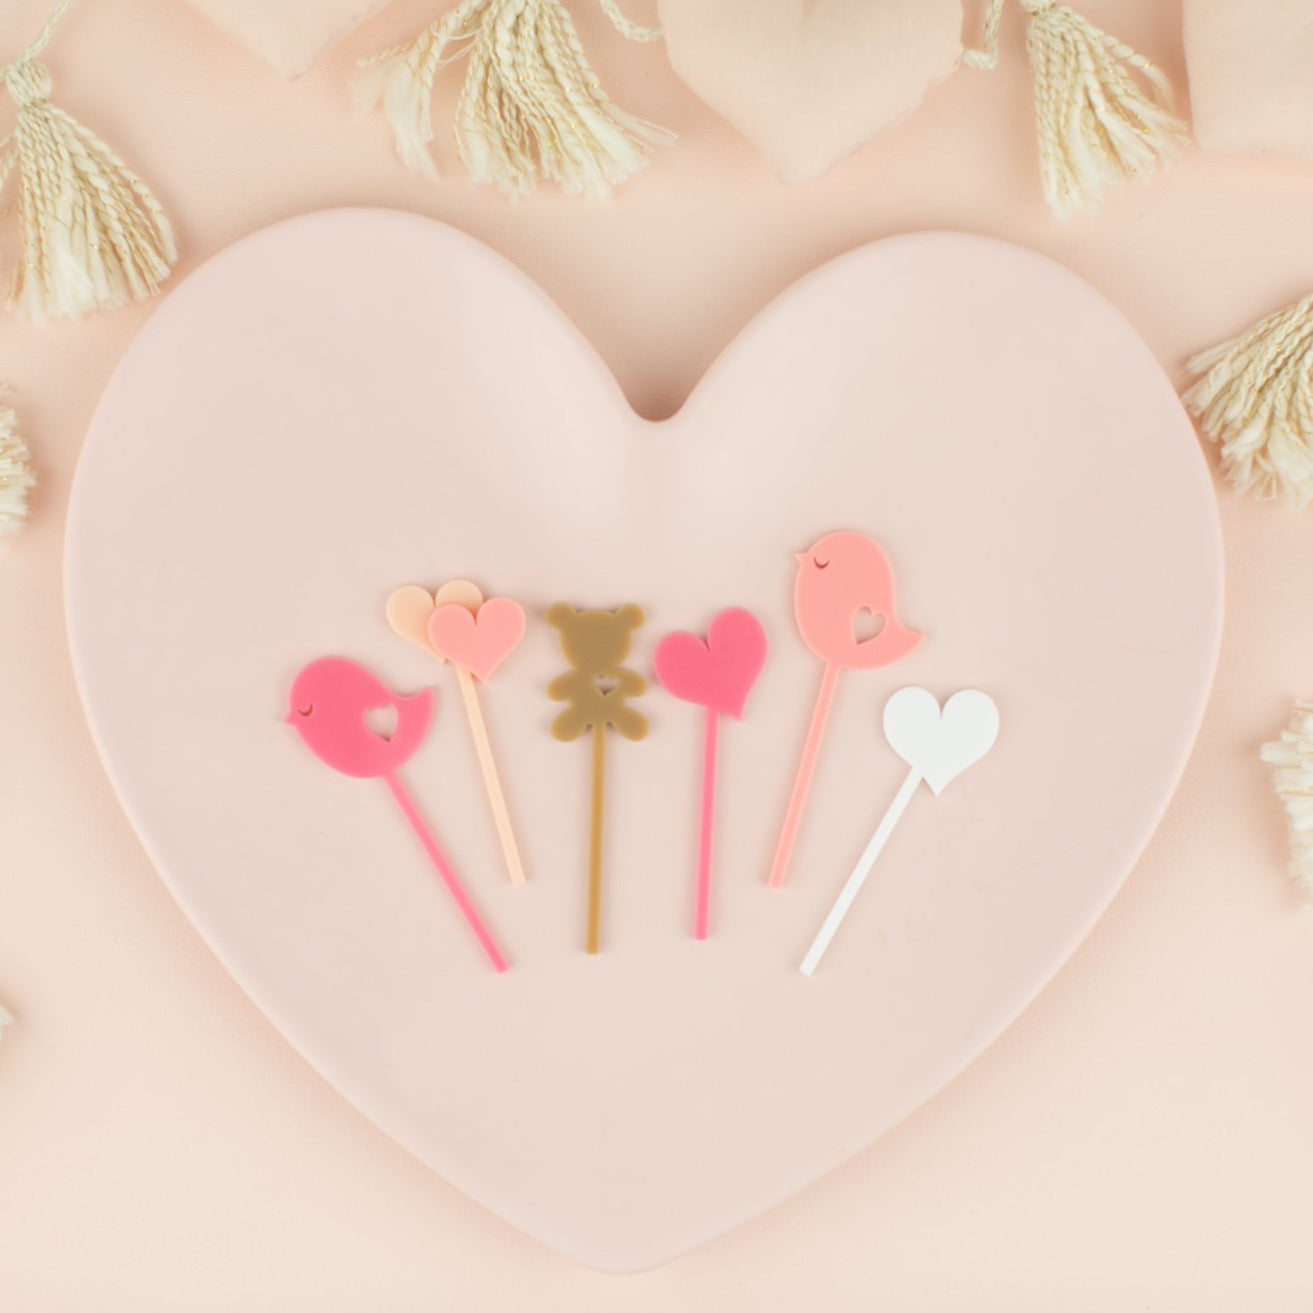 Assorted Valentine's Day Custom Cupcake Toppers, 6 Count